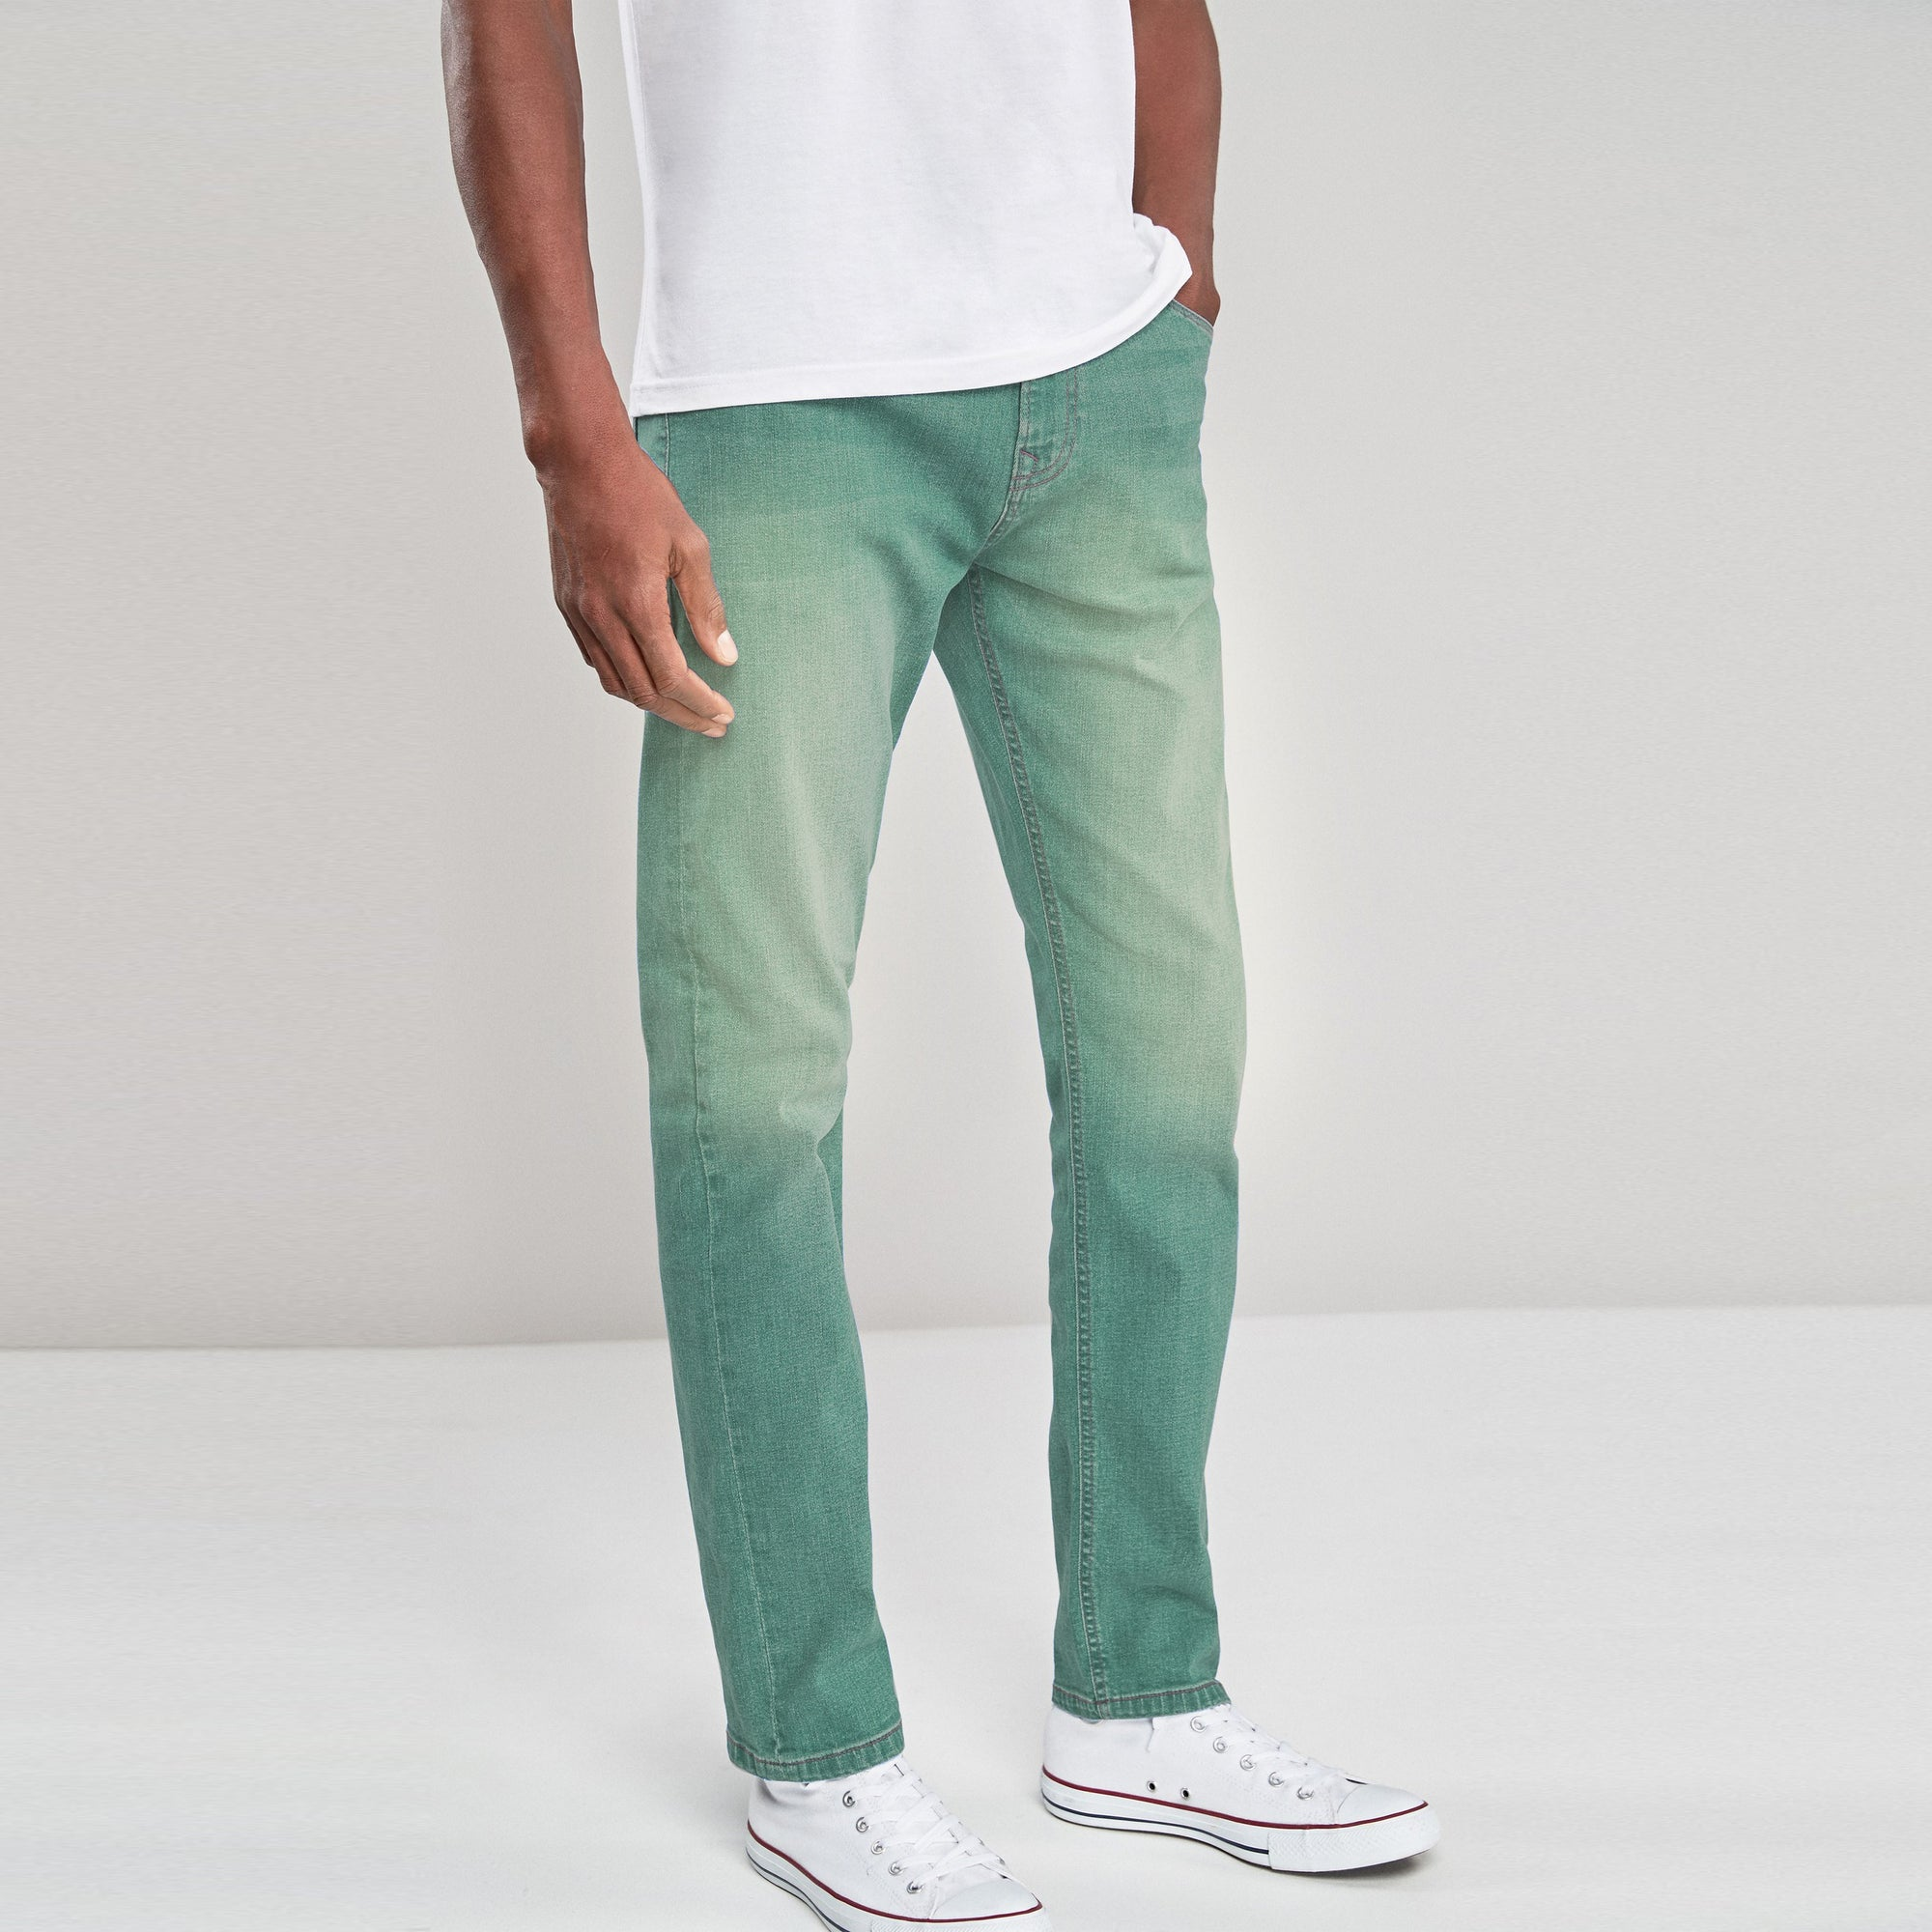 R. Society Slim Fit Stretch Denim For Men-Sea Green Faded-NA9718